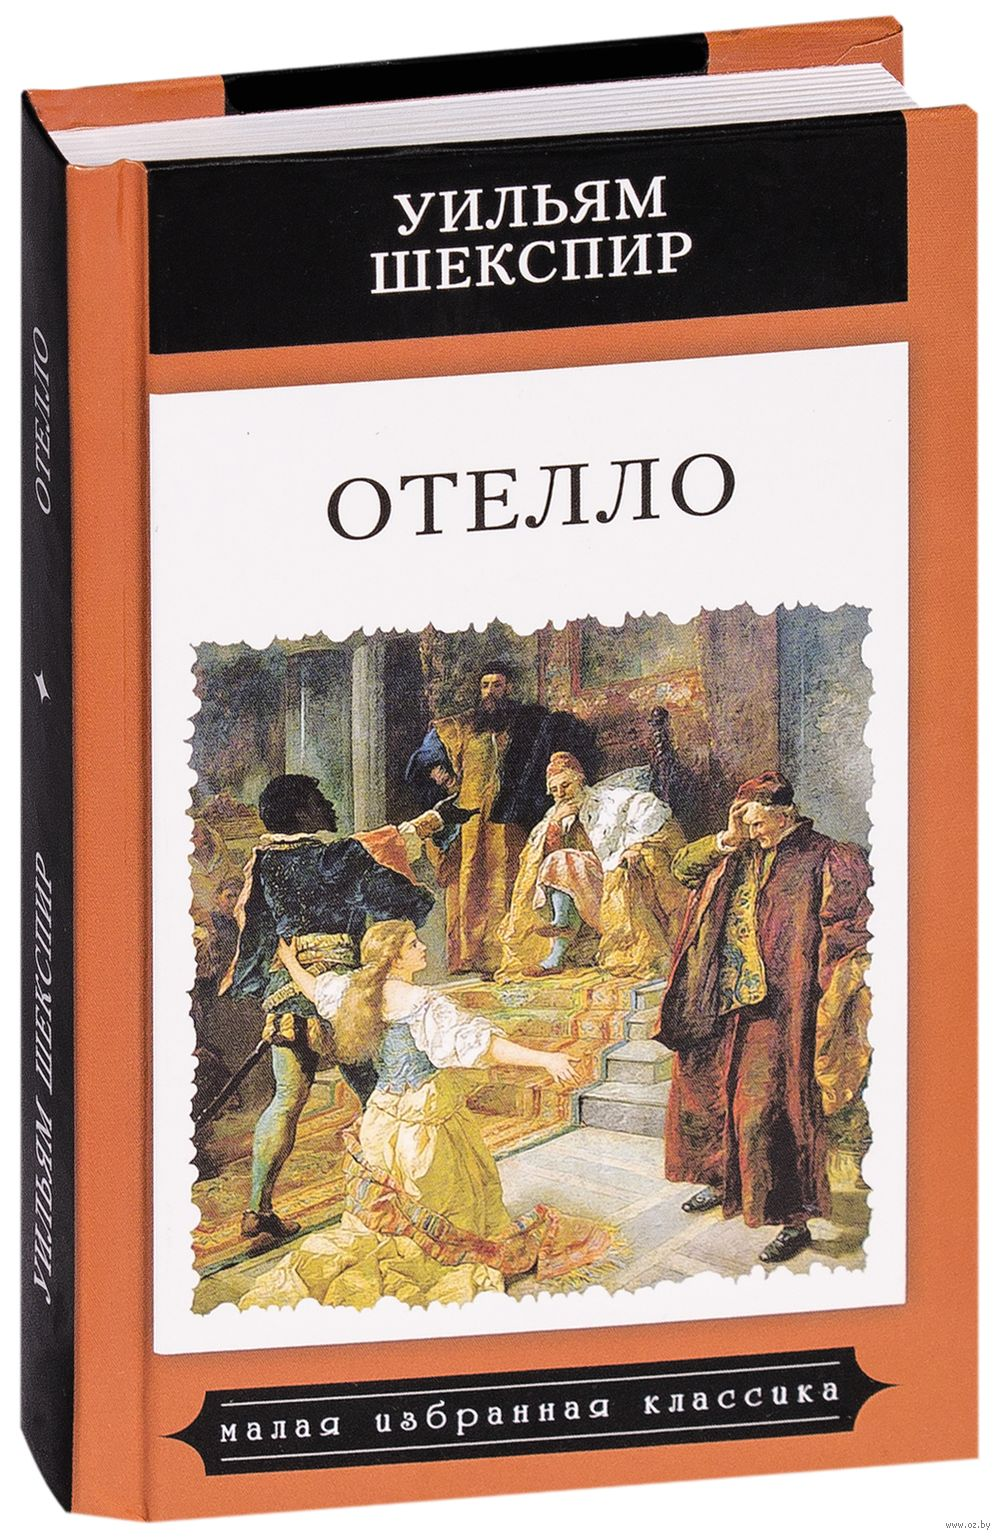 an analysis of the attitudes and values of the society in shakespeares othello